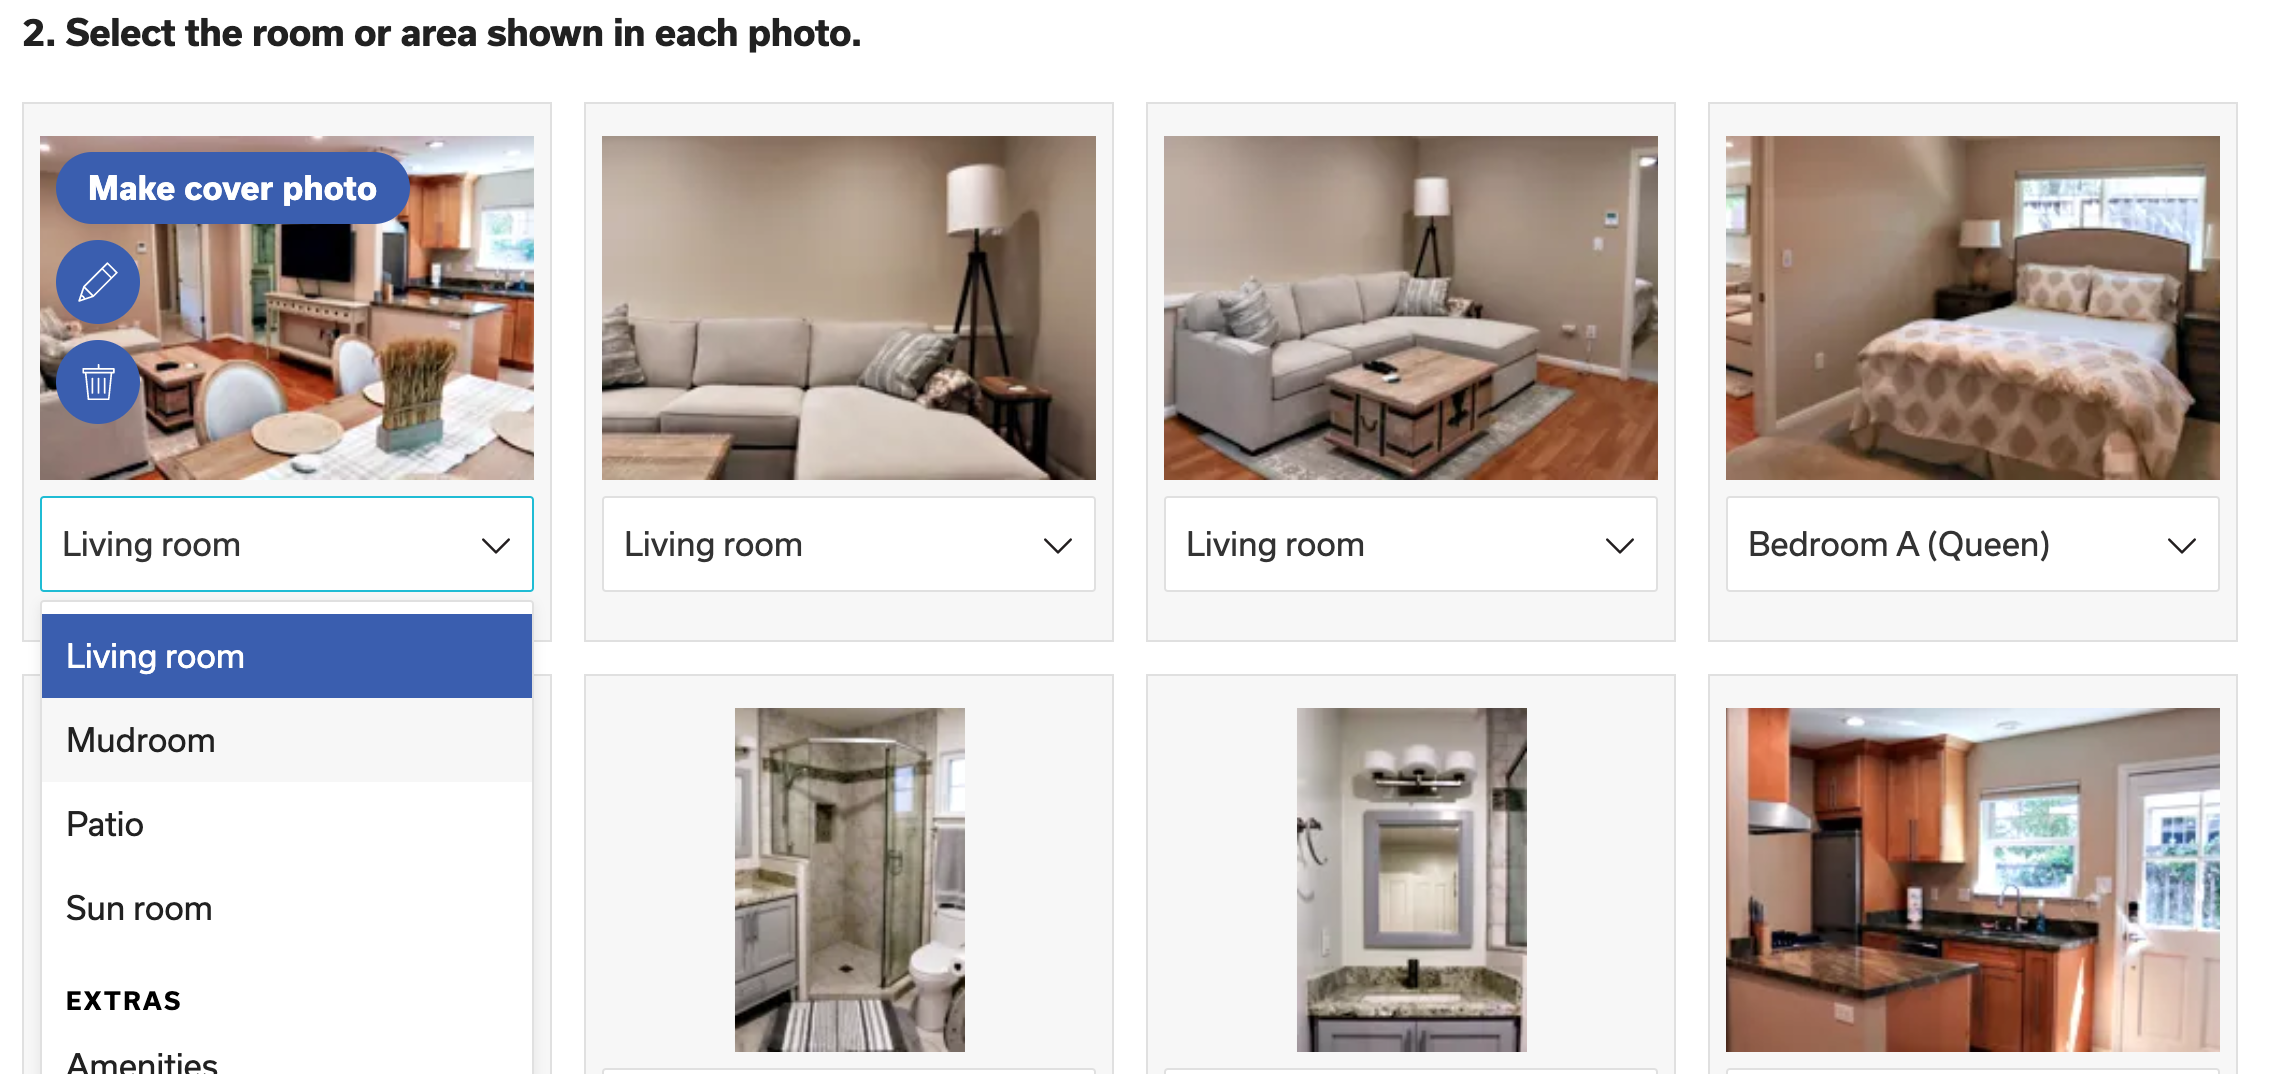 Select the bedroom for each photo